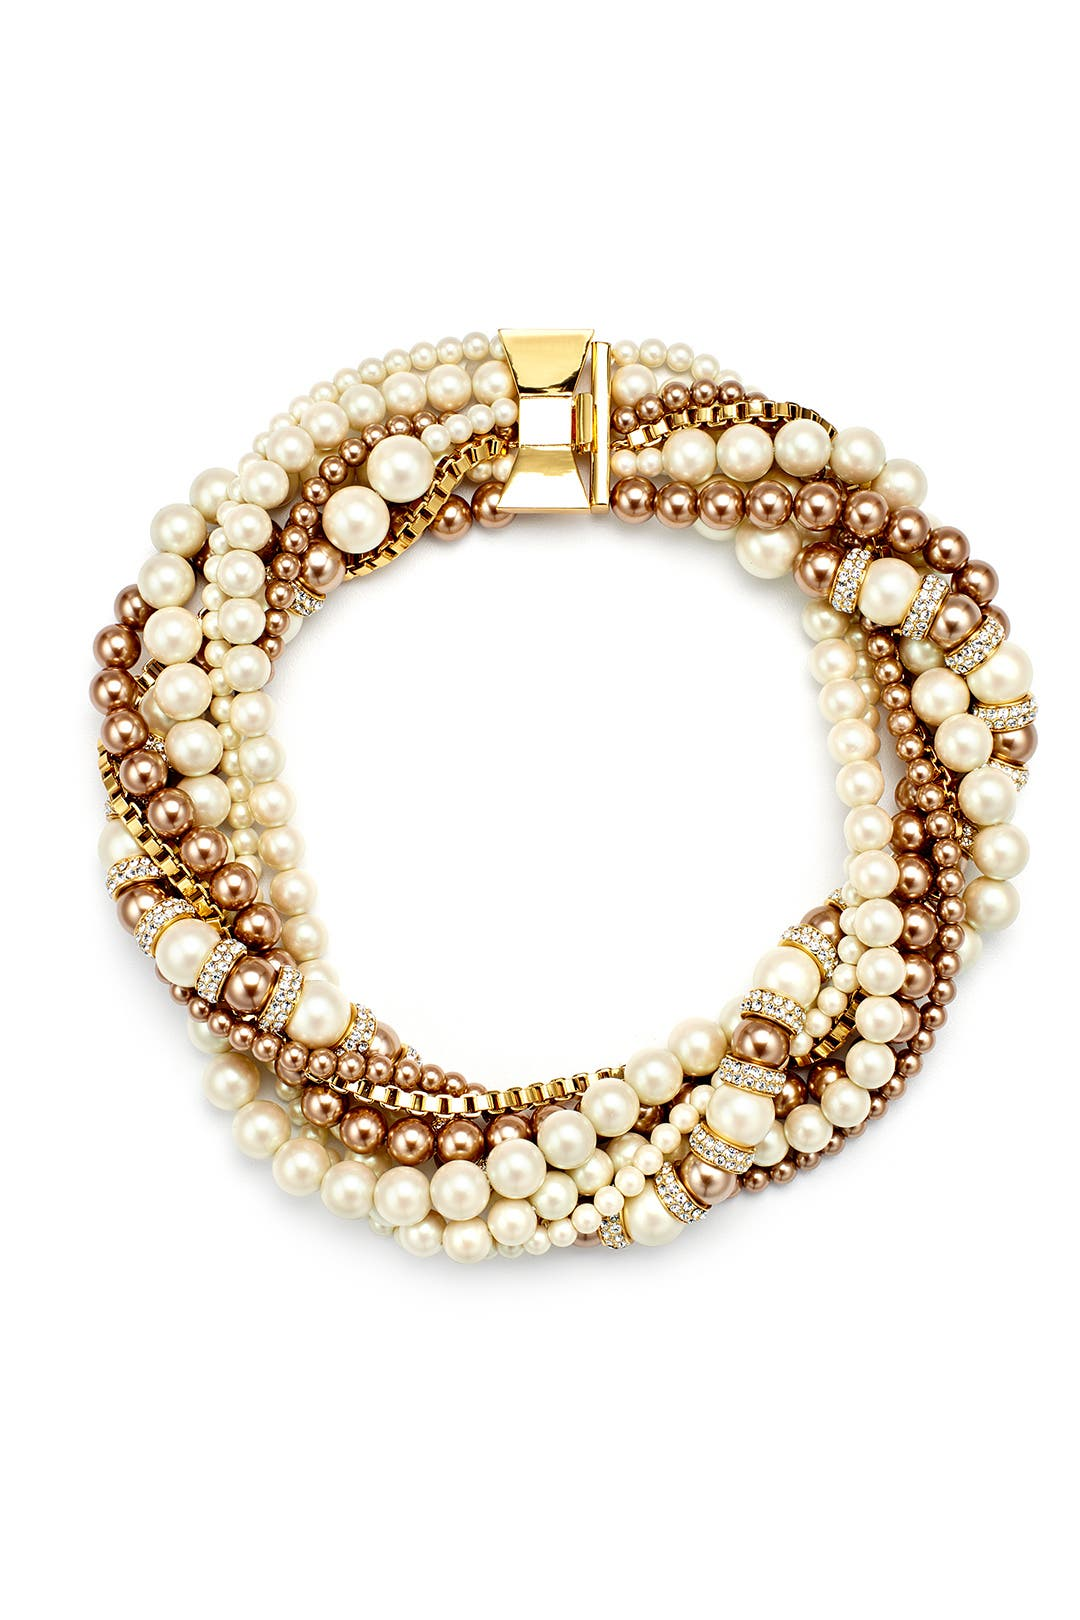 Parlour Pearls Necklace By Kate Spade New York Accessories For 120 Rent  The Runway